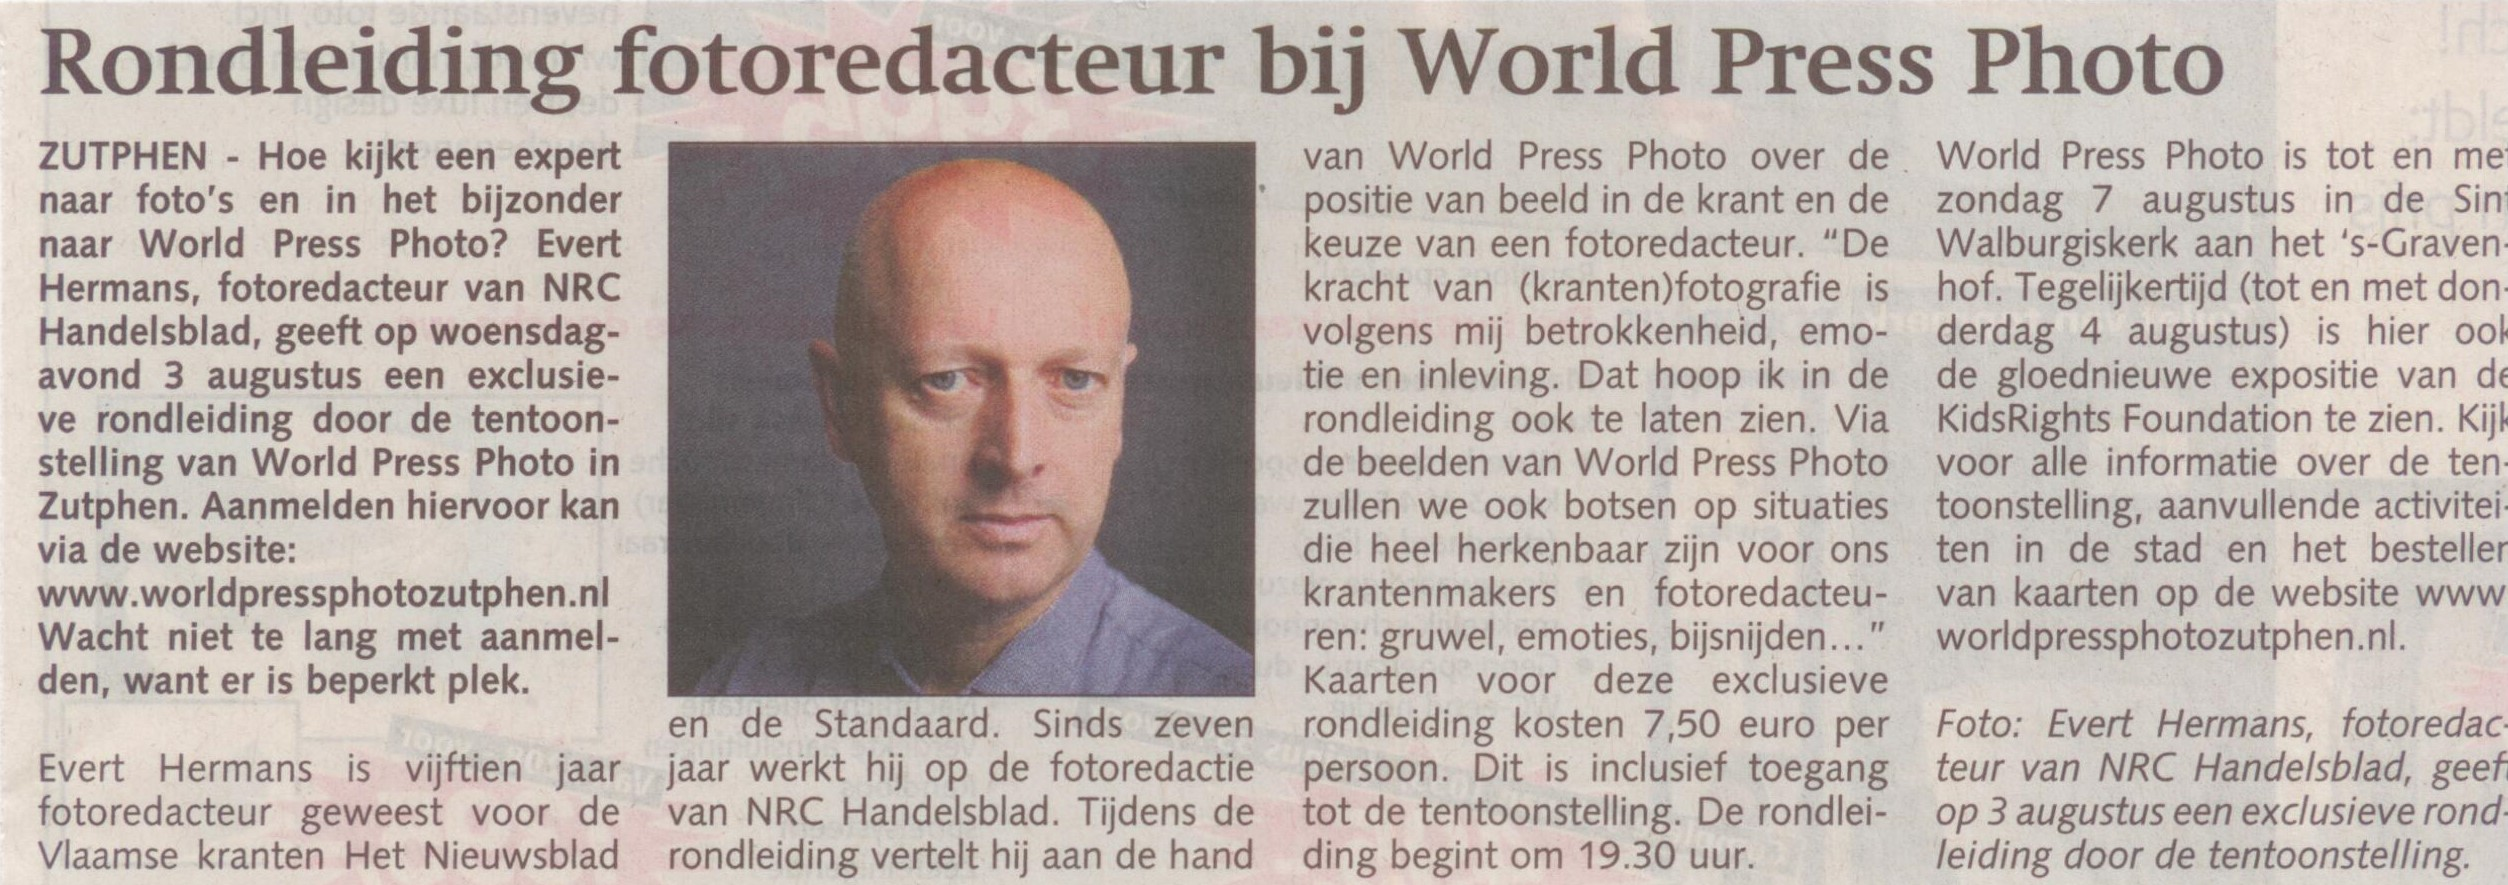 160727 Stedendriehoek Rondleiding fotoredacteur bij World Press Photo